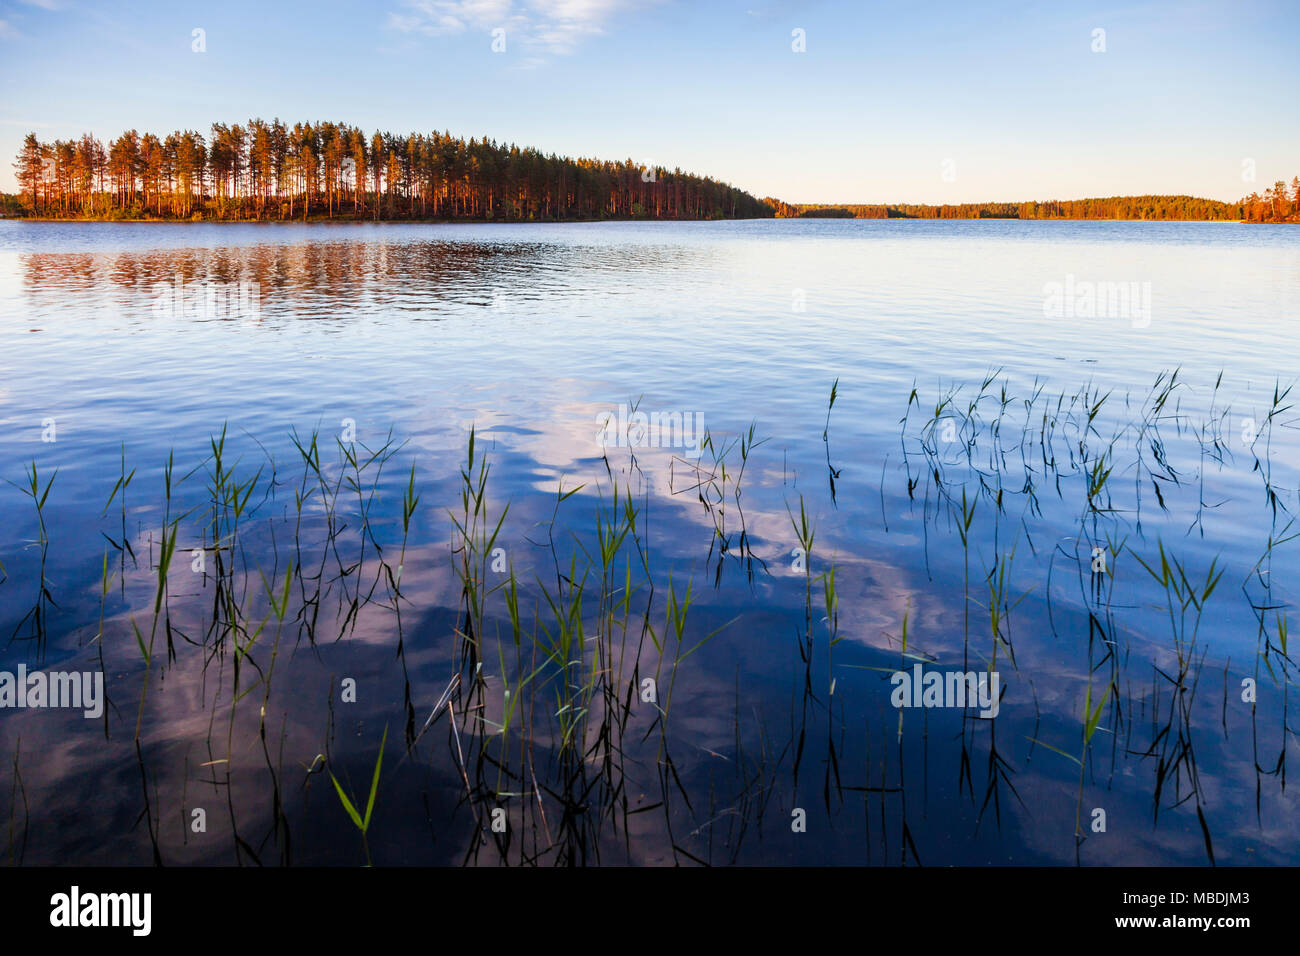 Lake, Summertime, Mid Sweden. View from Kabin private island, run by Stilleben Hotel, Ämot. - Stock Image